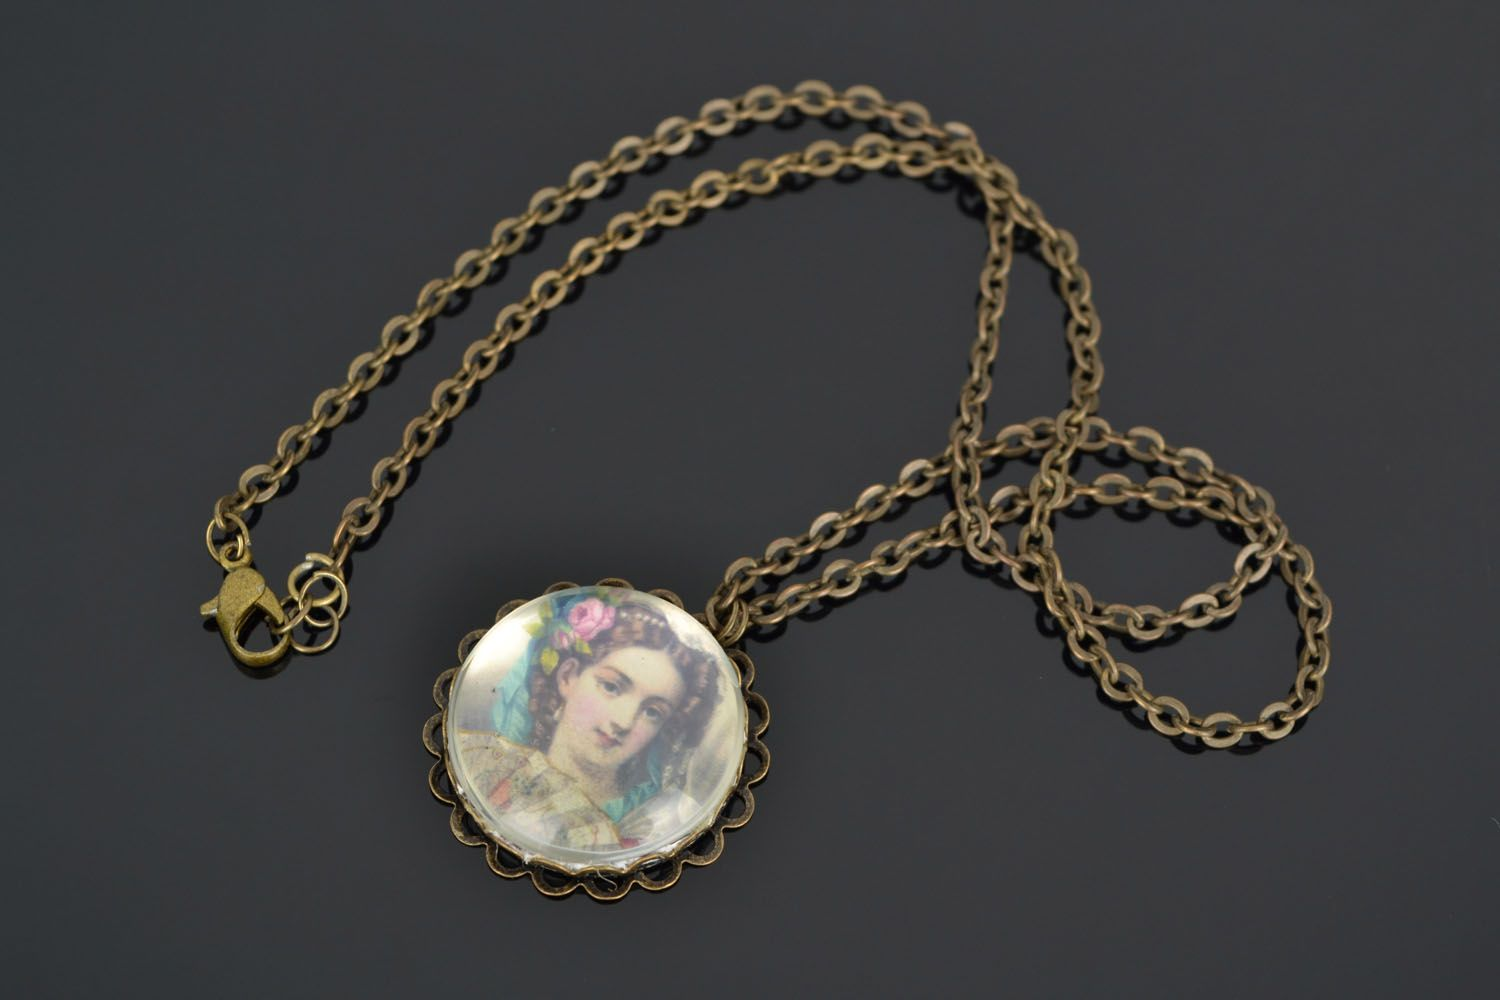 Homemade pendant with long chain photo 1